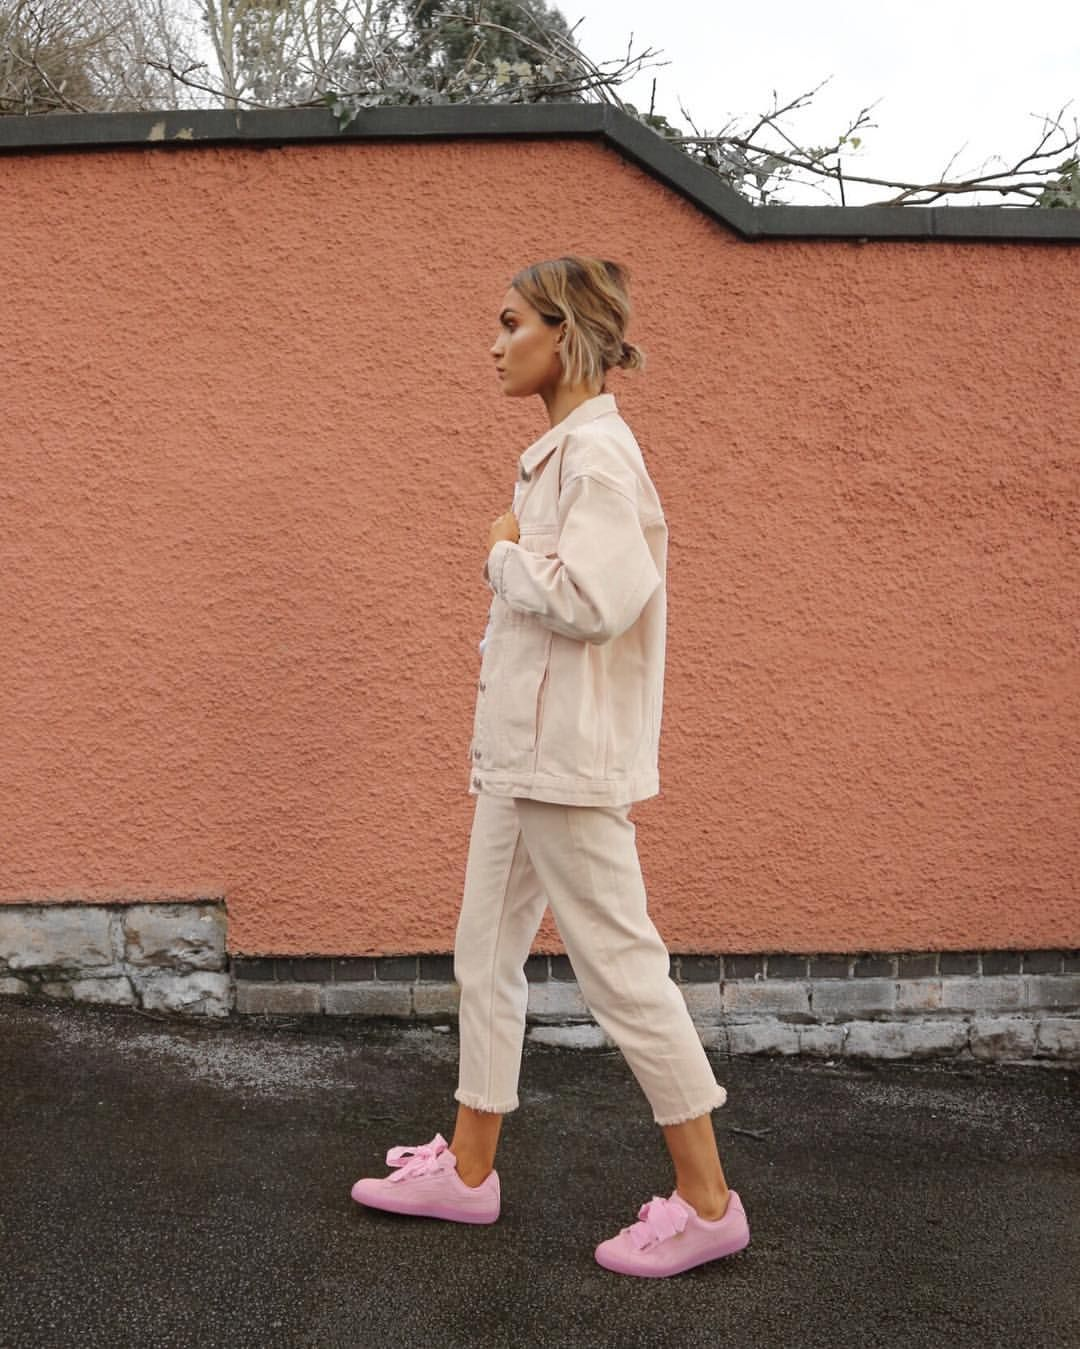 K Likes  Comments Alicia Roddy Lissyroddyy On Instagram  C B Pink Puma Suedepuma Suede Outfitthe